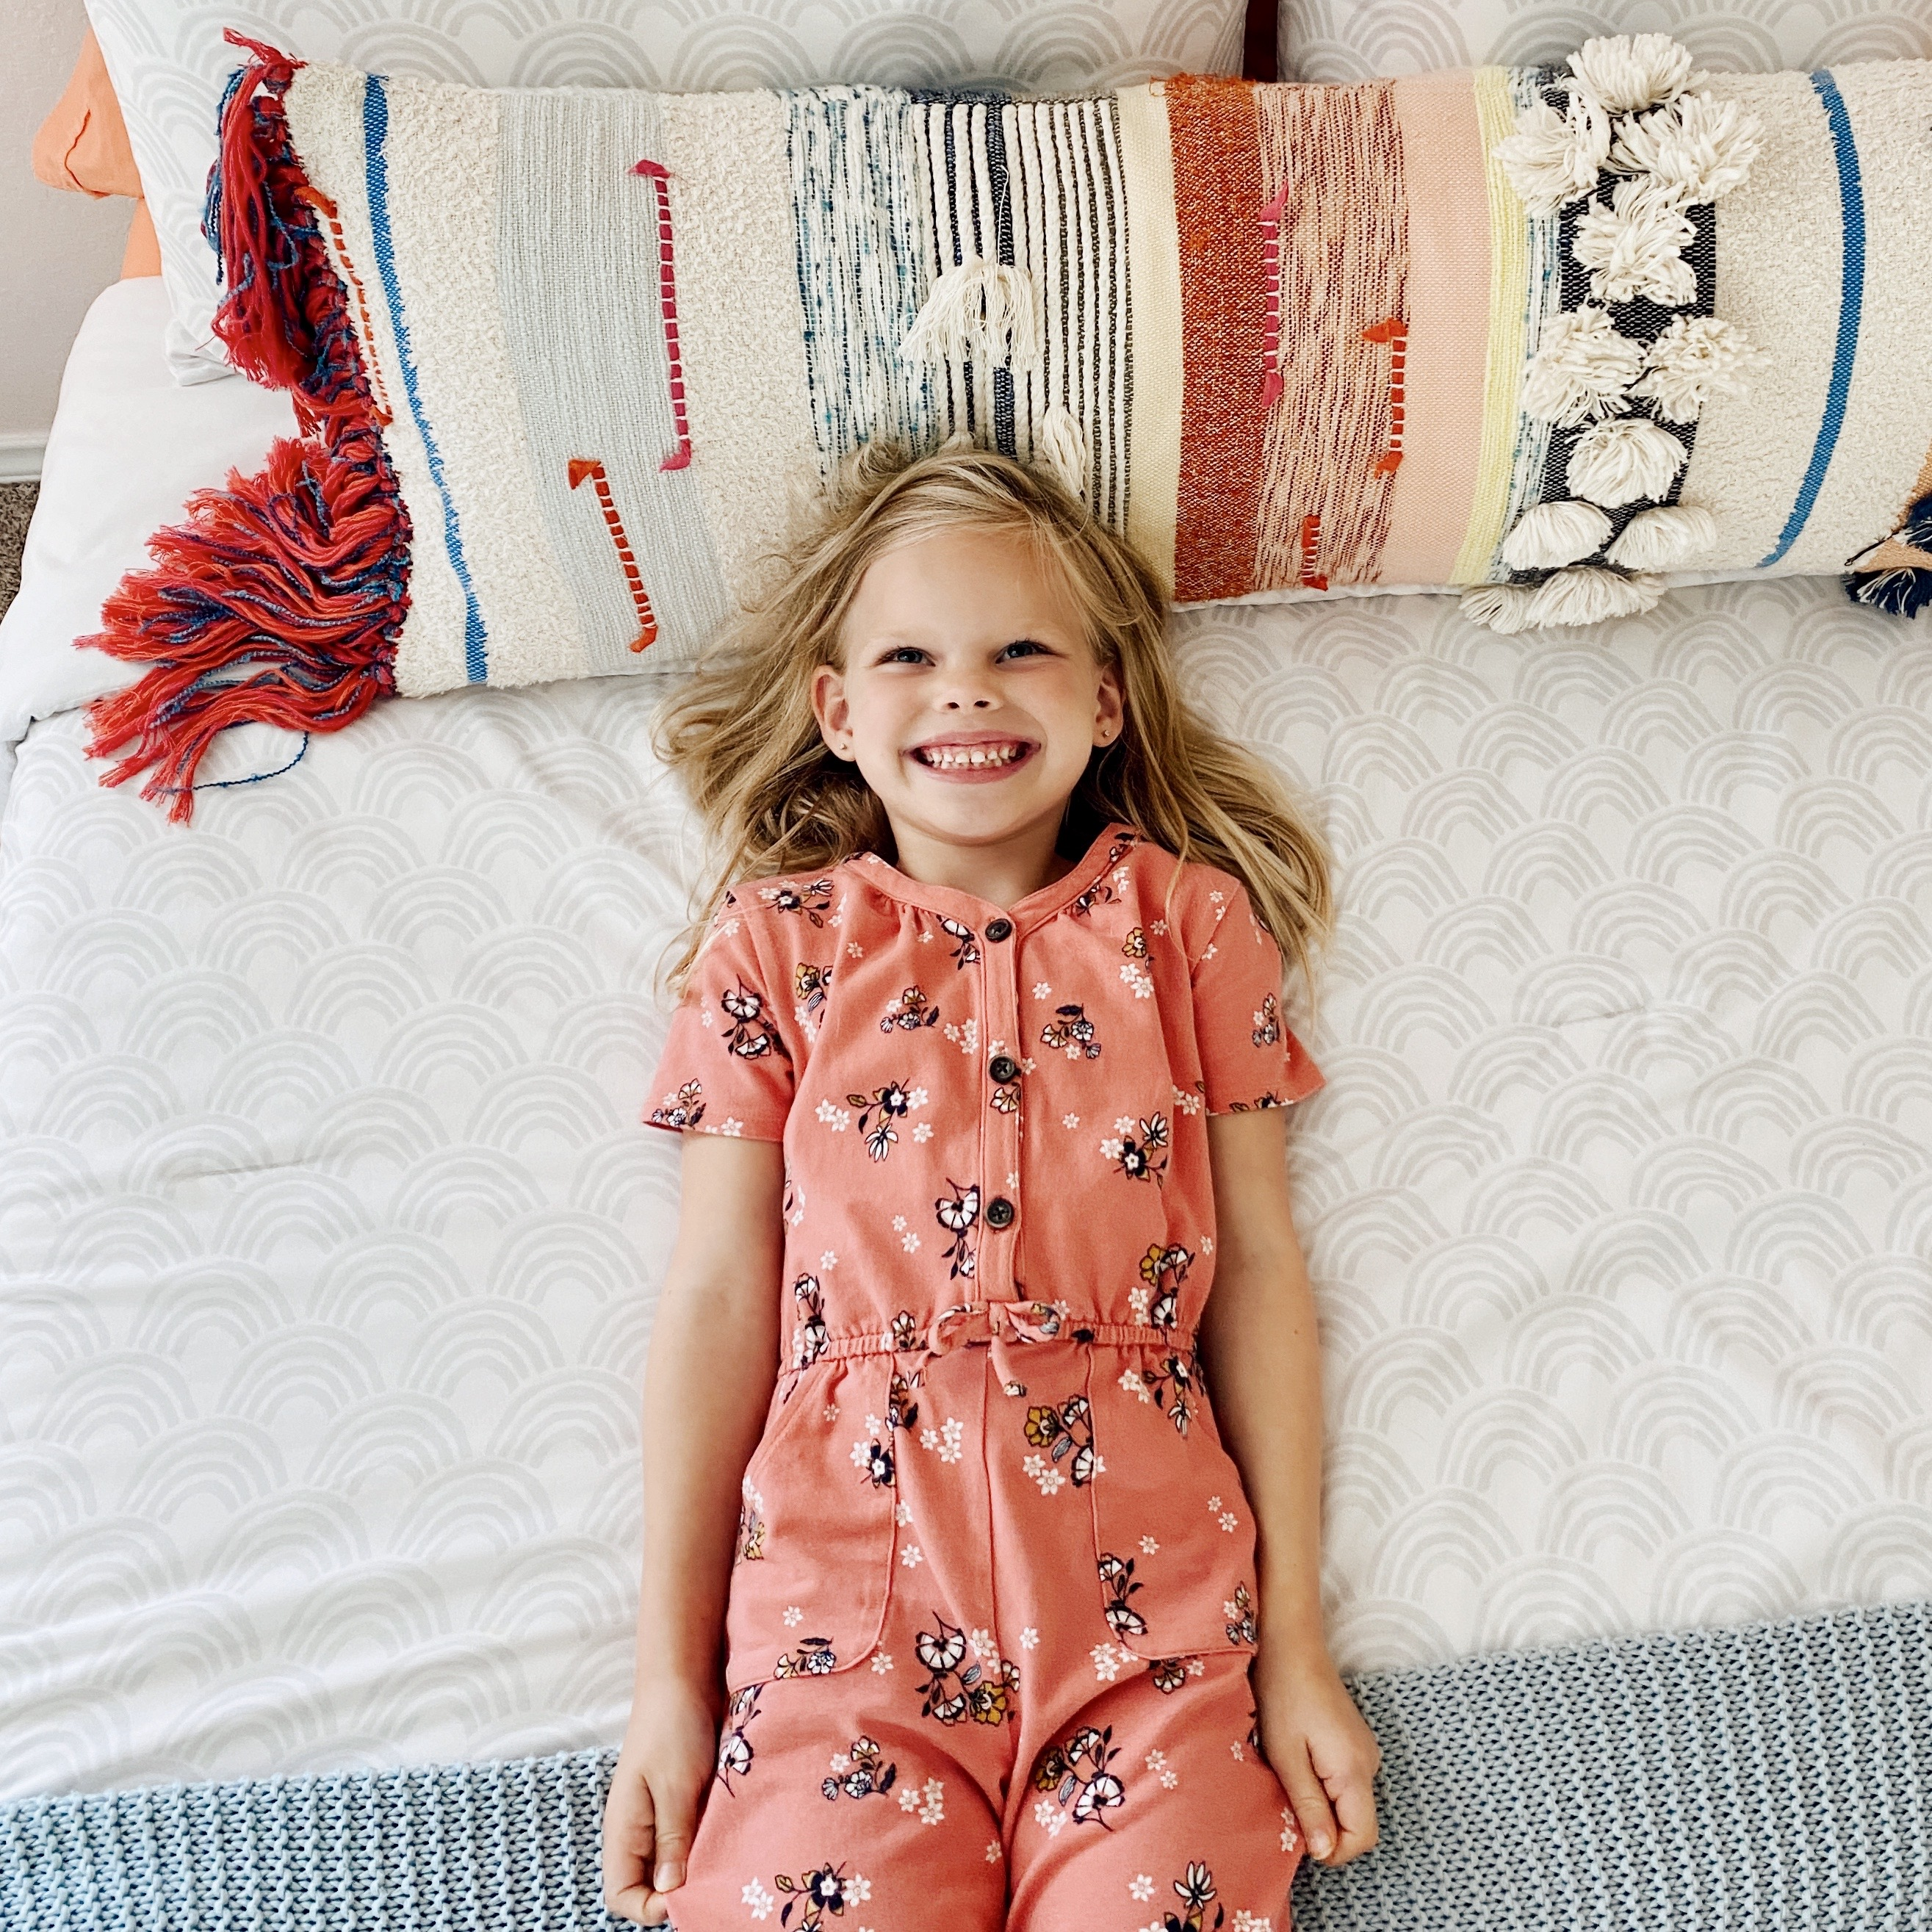 chris's daughter annabelle smiling in bed